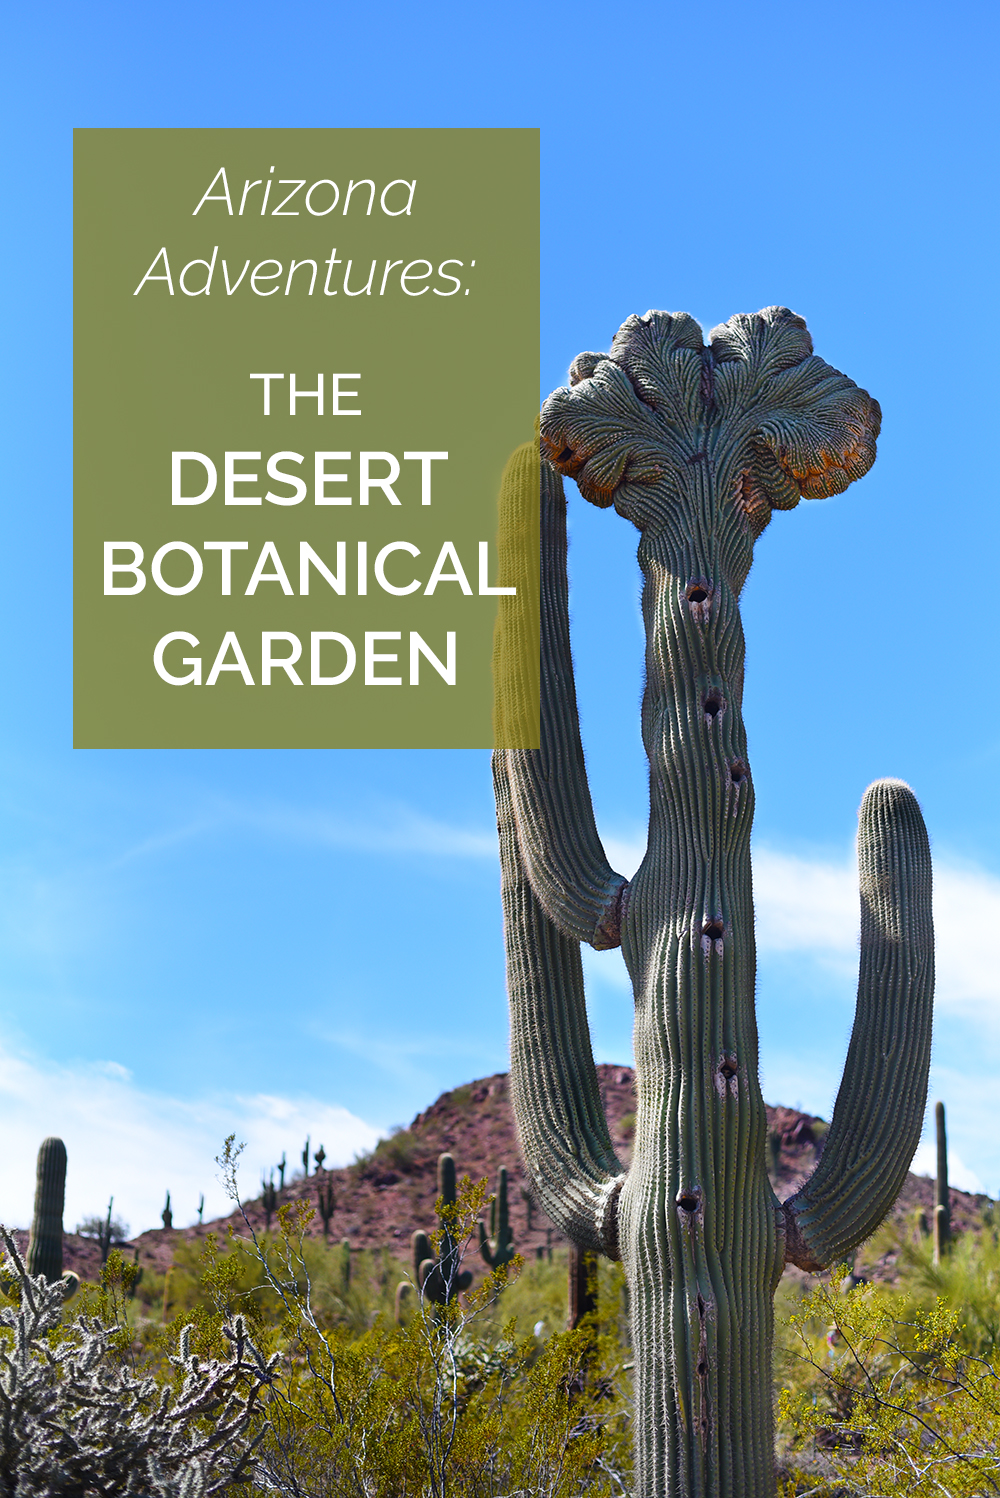 Tips for visiting the Desert Botanical Garden in Phoenix, Arizona